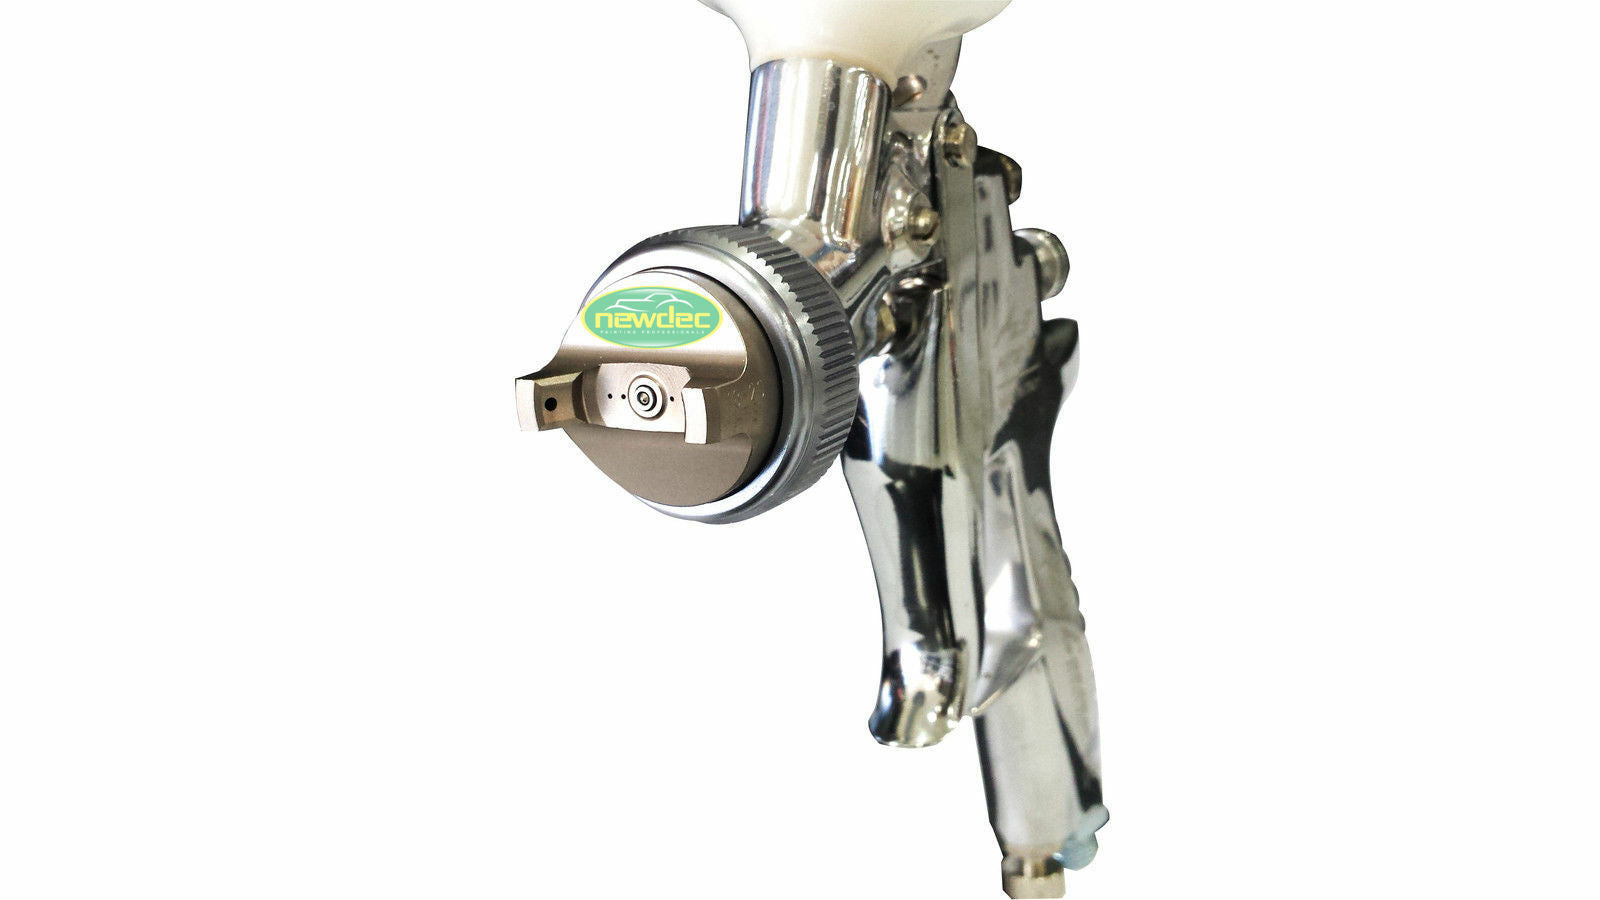 IWATA AZ3 HTE2 1.8mm ACRYLIC GRAVITY SPRAY GUN PRIMER ENAMEL HAMMERCOAT